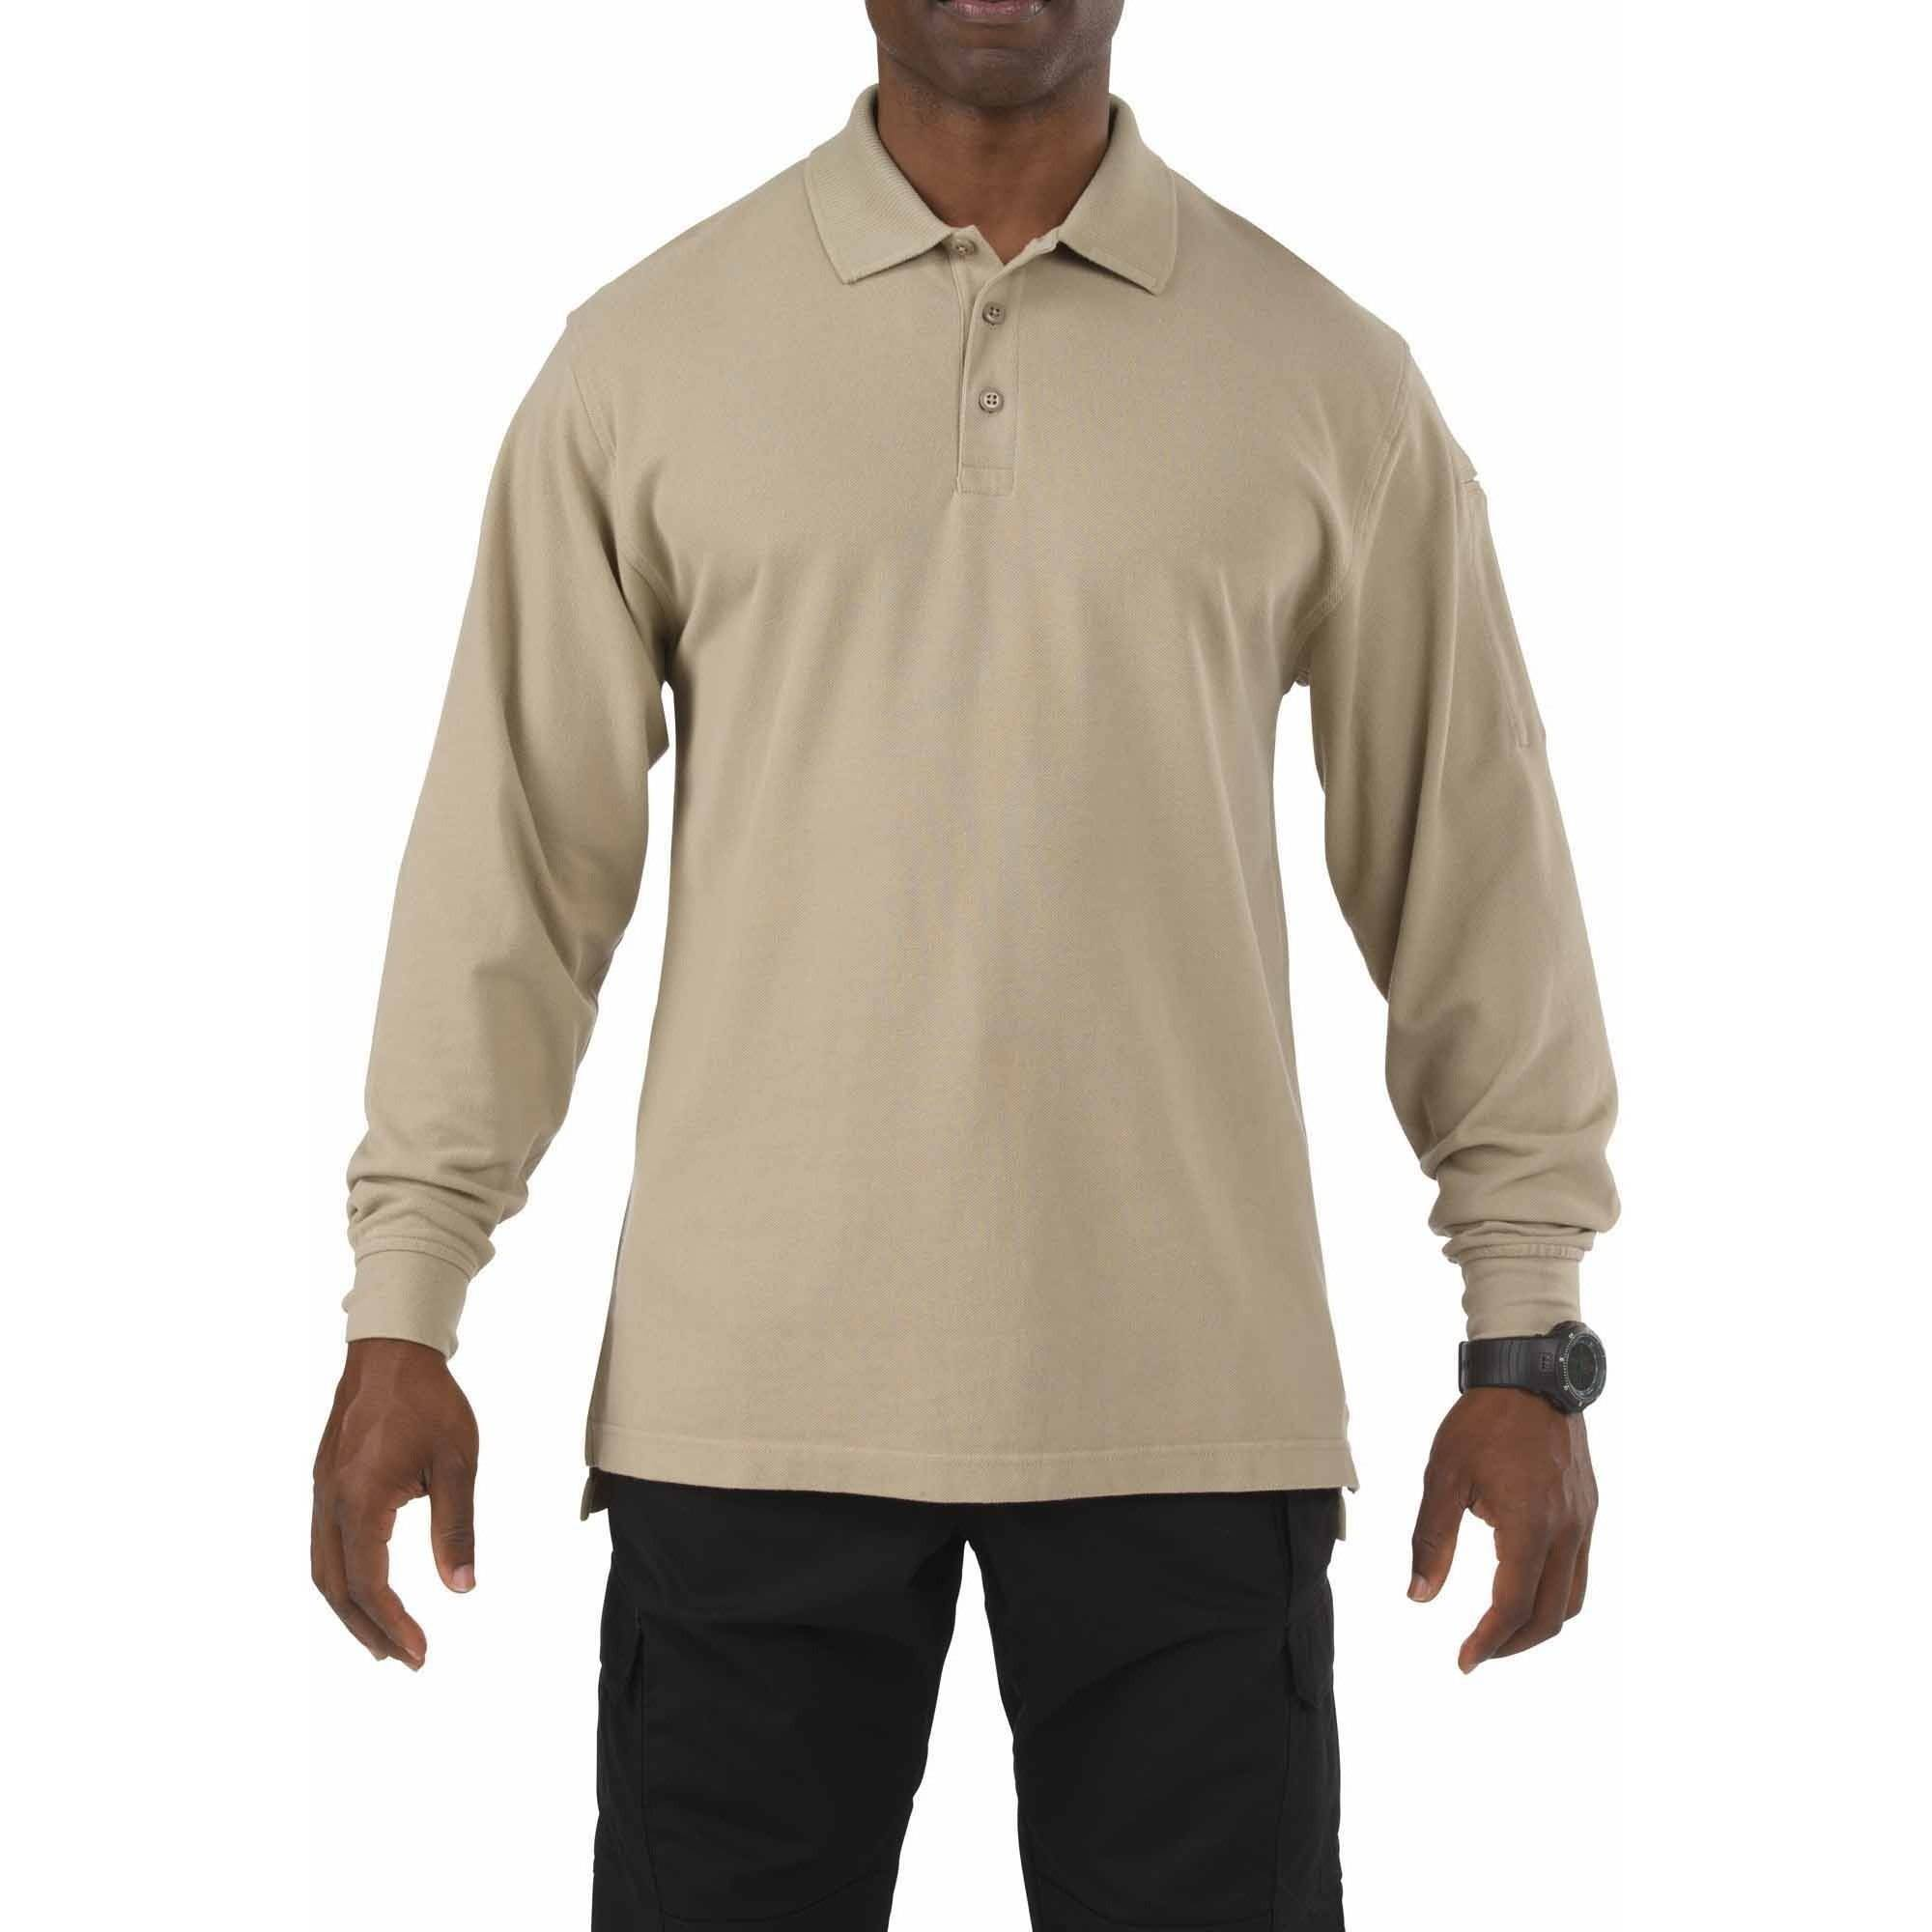 Long Sleeve Professional Polo Shirt, Silver Tan